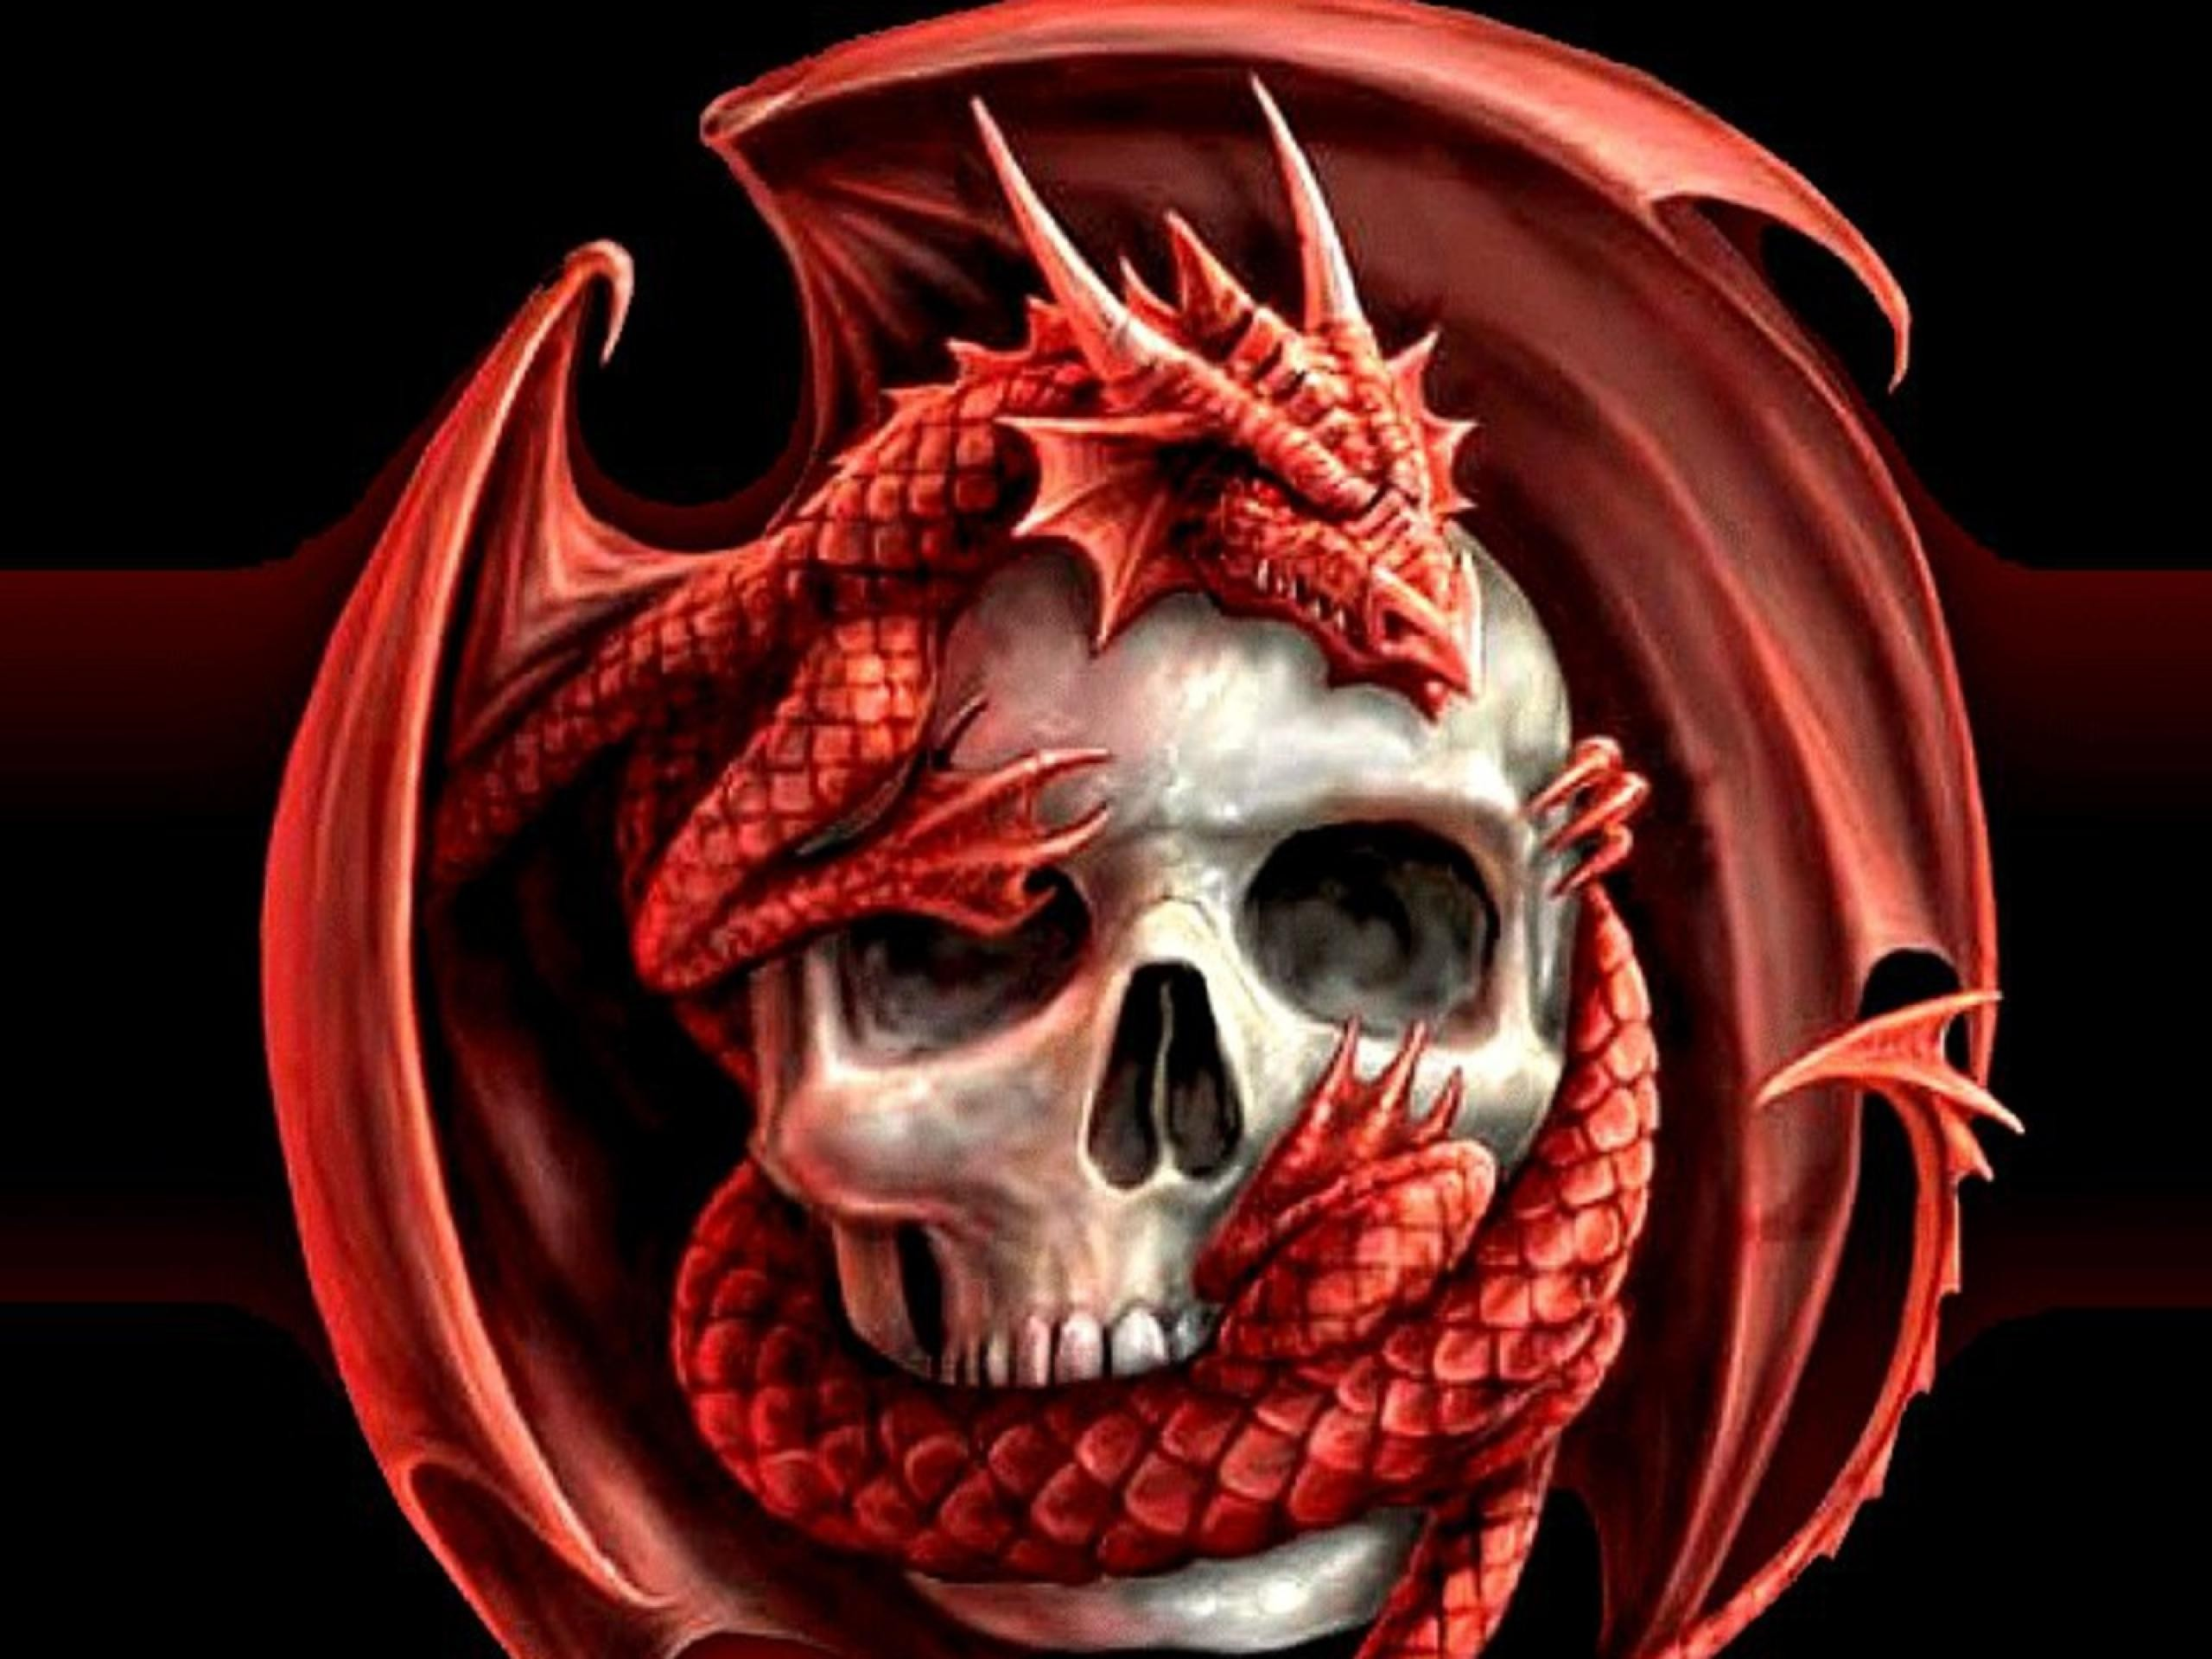 Skulls dragons wallpaper | 2560x1920 | 220804 | WallpaperUP